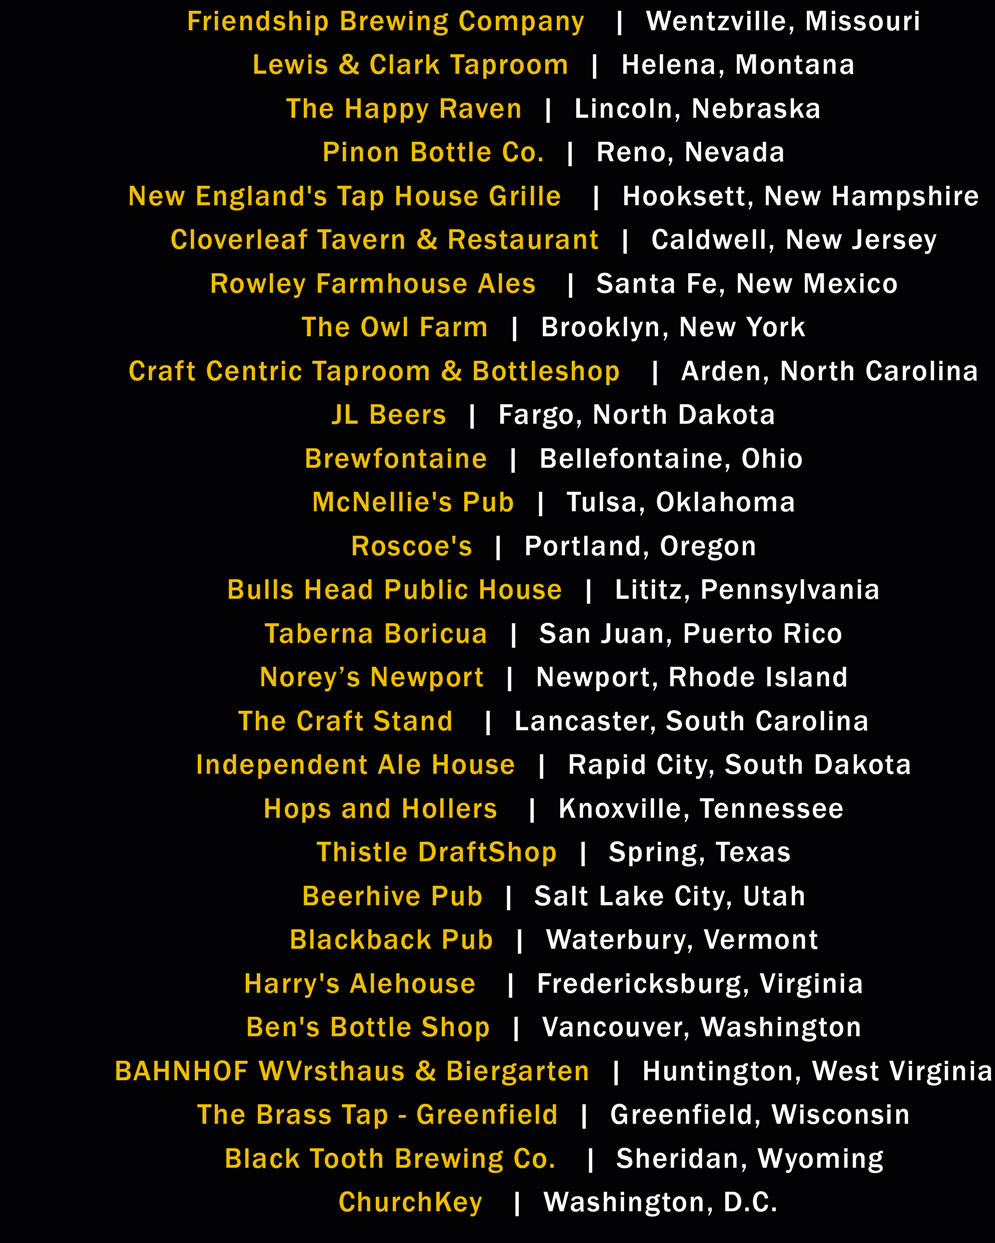 The Best Beer Bar in Every State, According to CraftBeer.com